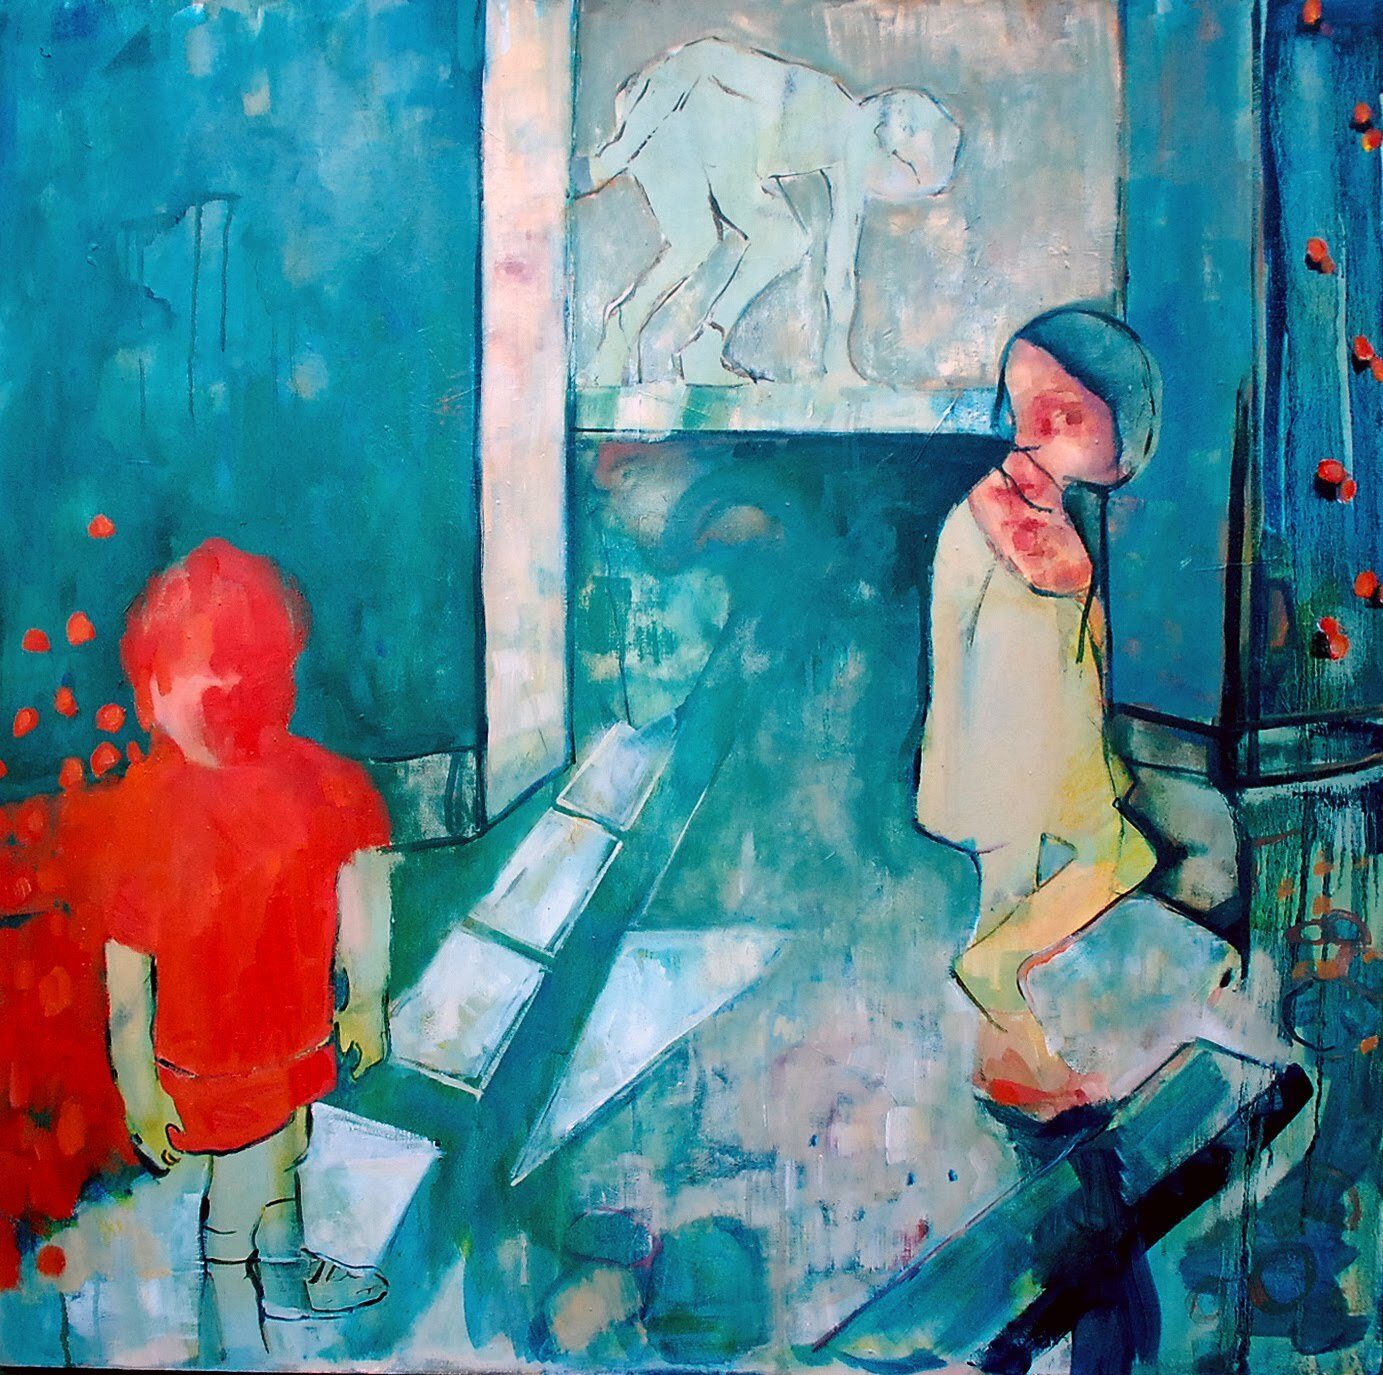 Artist: Amy Dury  Title: Three Children  Size: 100 x 100 cm  Medium: Oil on canvas  Price: £1200